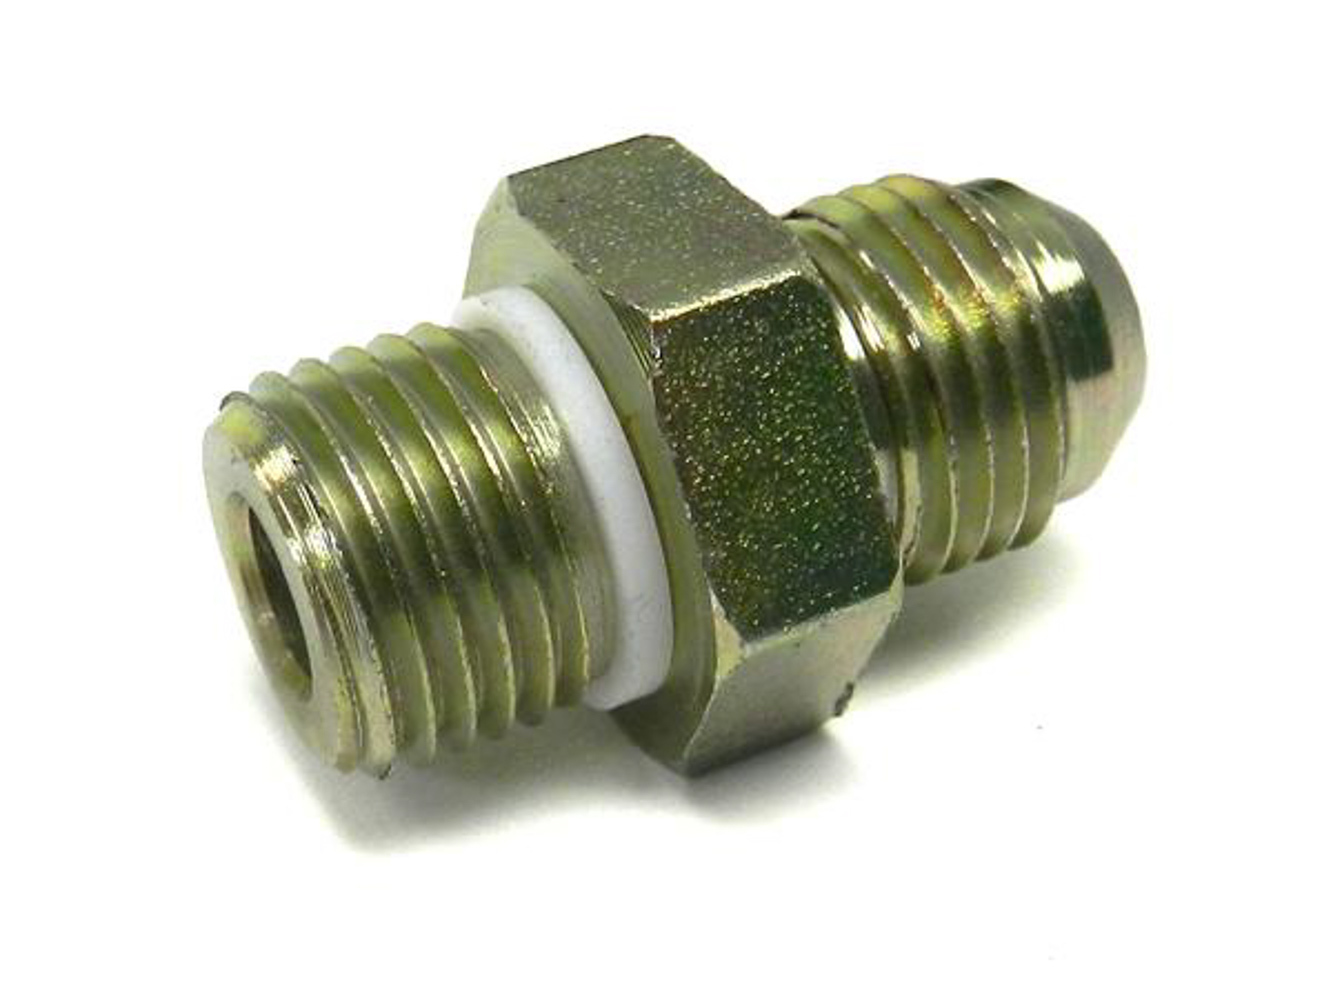 Unisteer 8021660 Fitting, Adapter, Straight, 6 AN Male to 9/16-18 in Male Thread, Aluminum, Natural, Power Steering Systems, Each